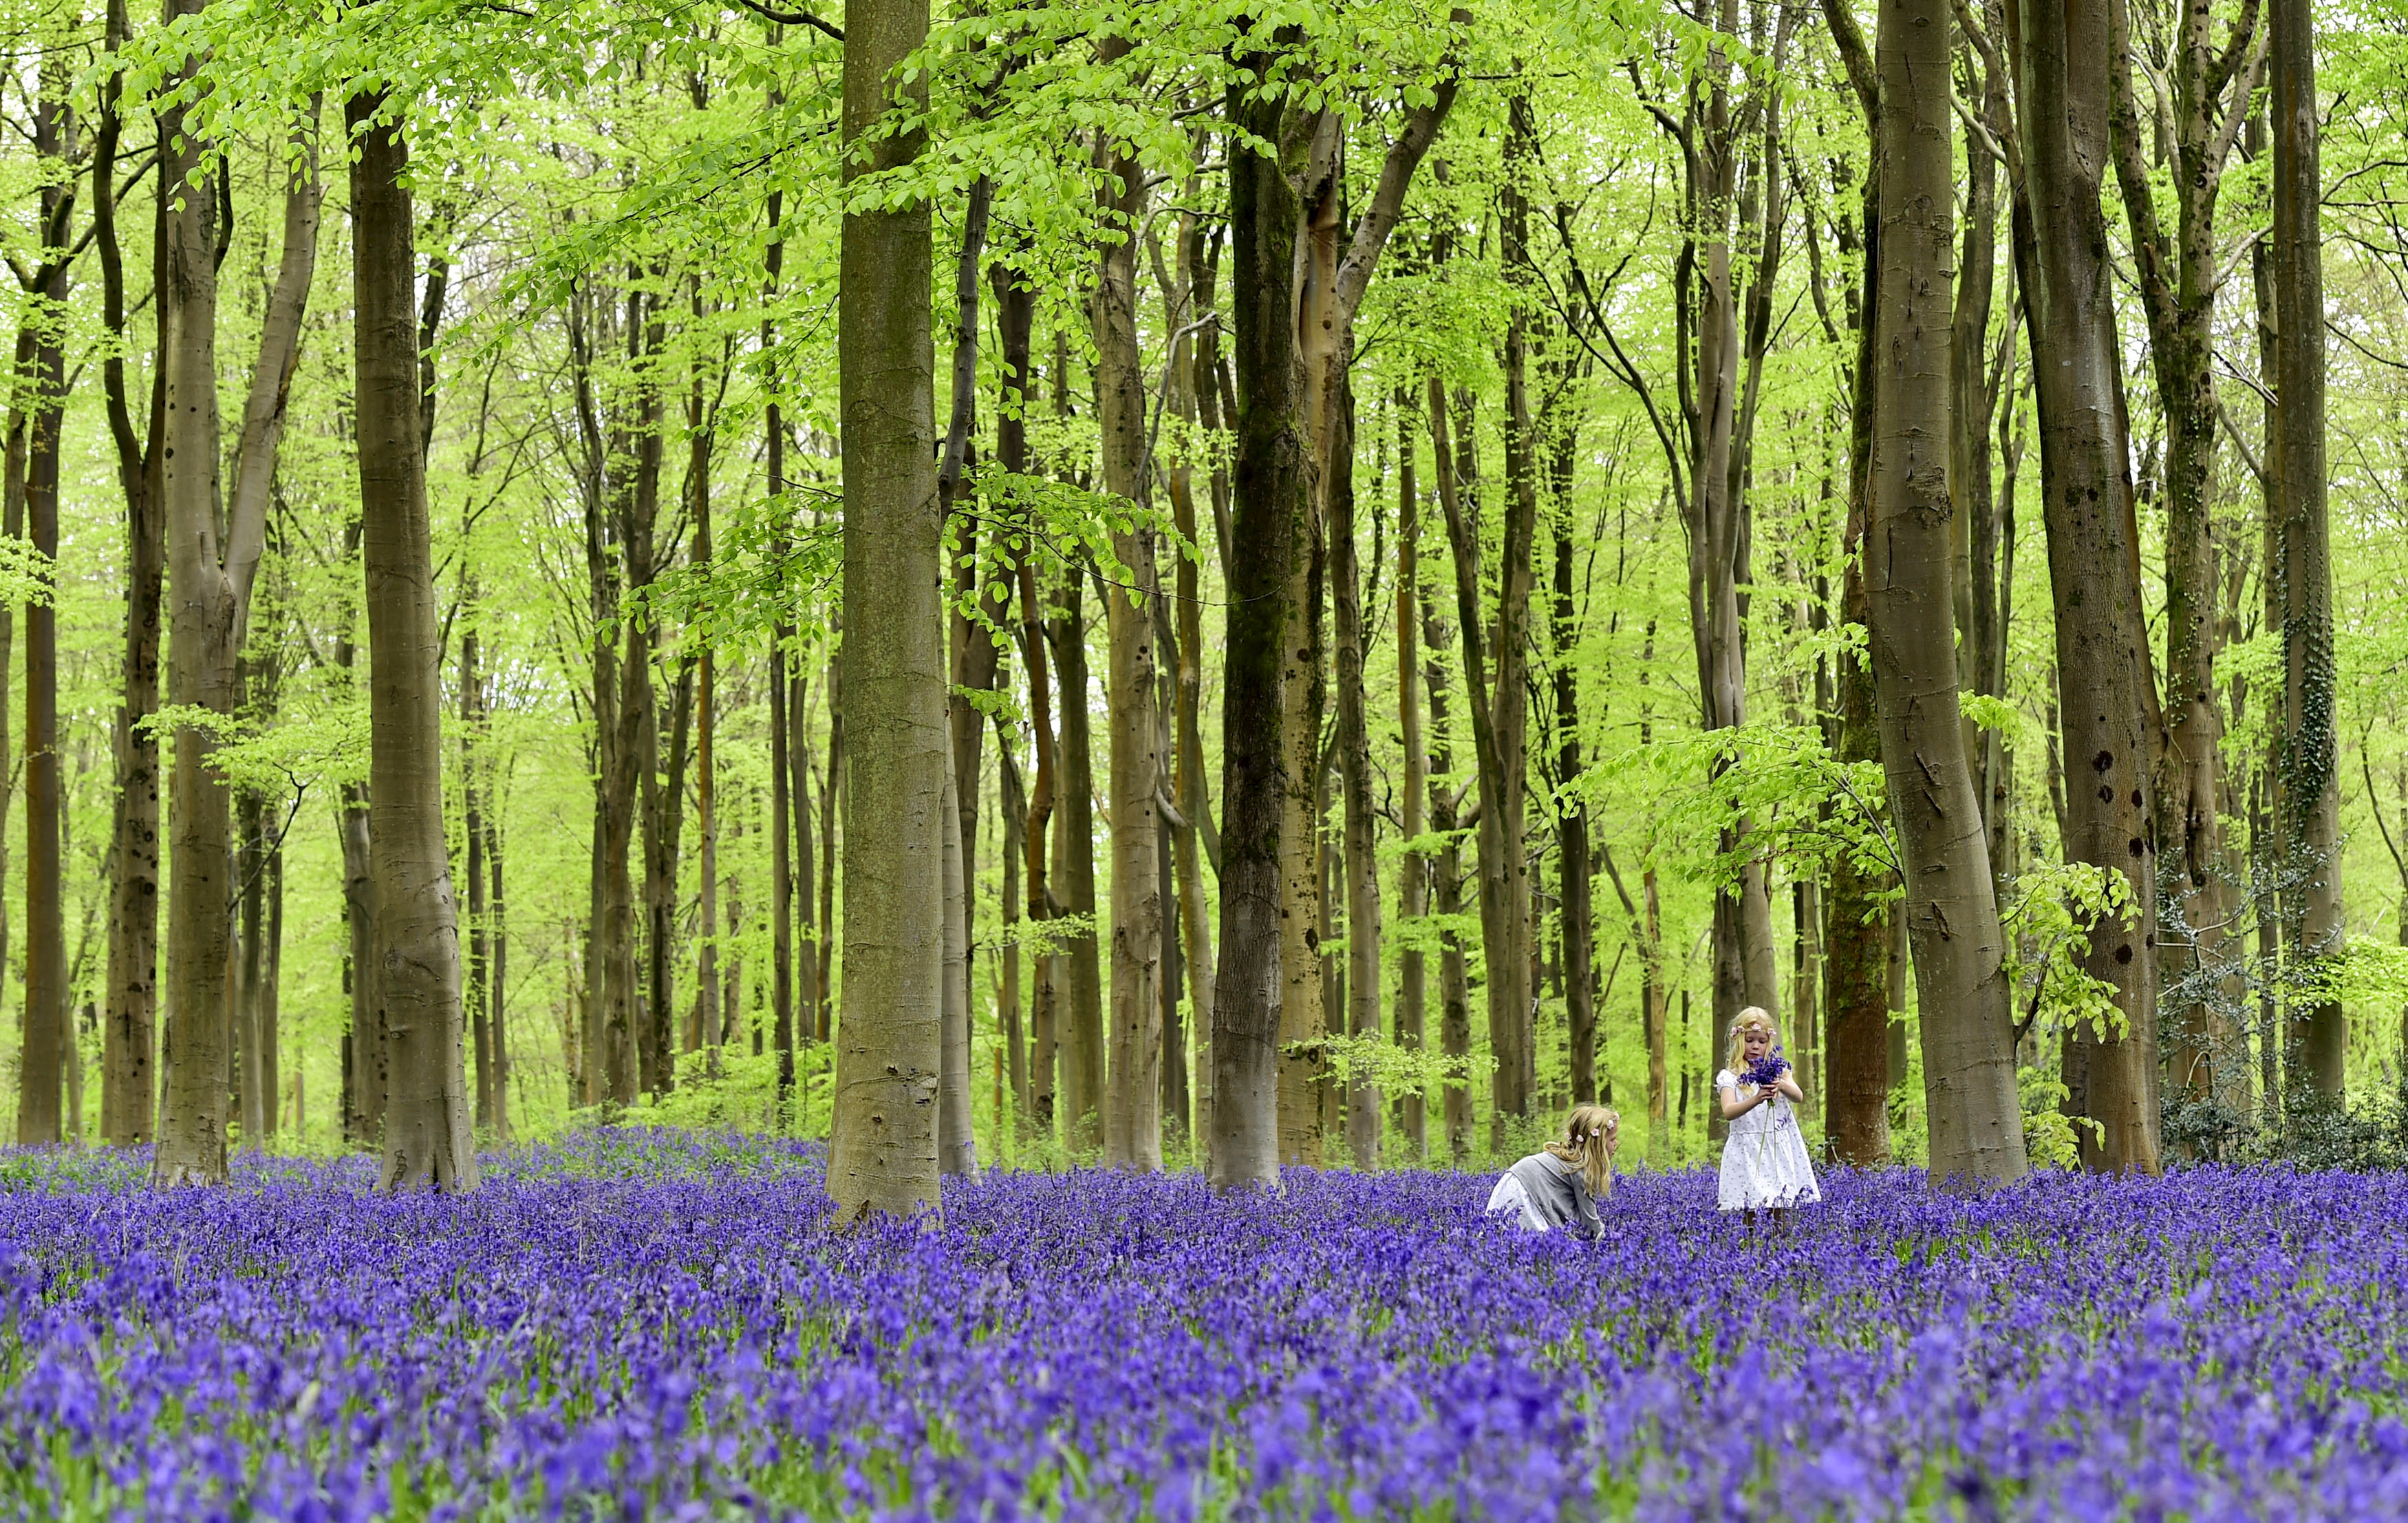 Local youngsters Bella (L) and Daisy walk through a forest covered in bluebells near Marlborough in southern England, May 4, 2015. REUTERS/Toby Melville